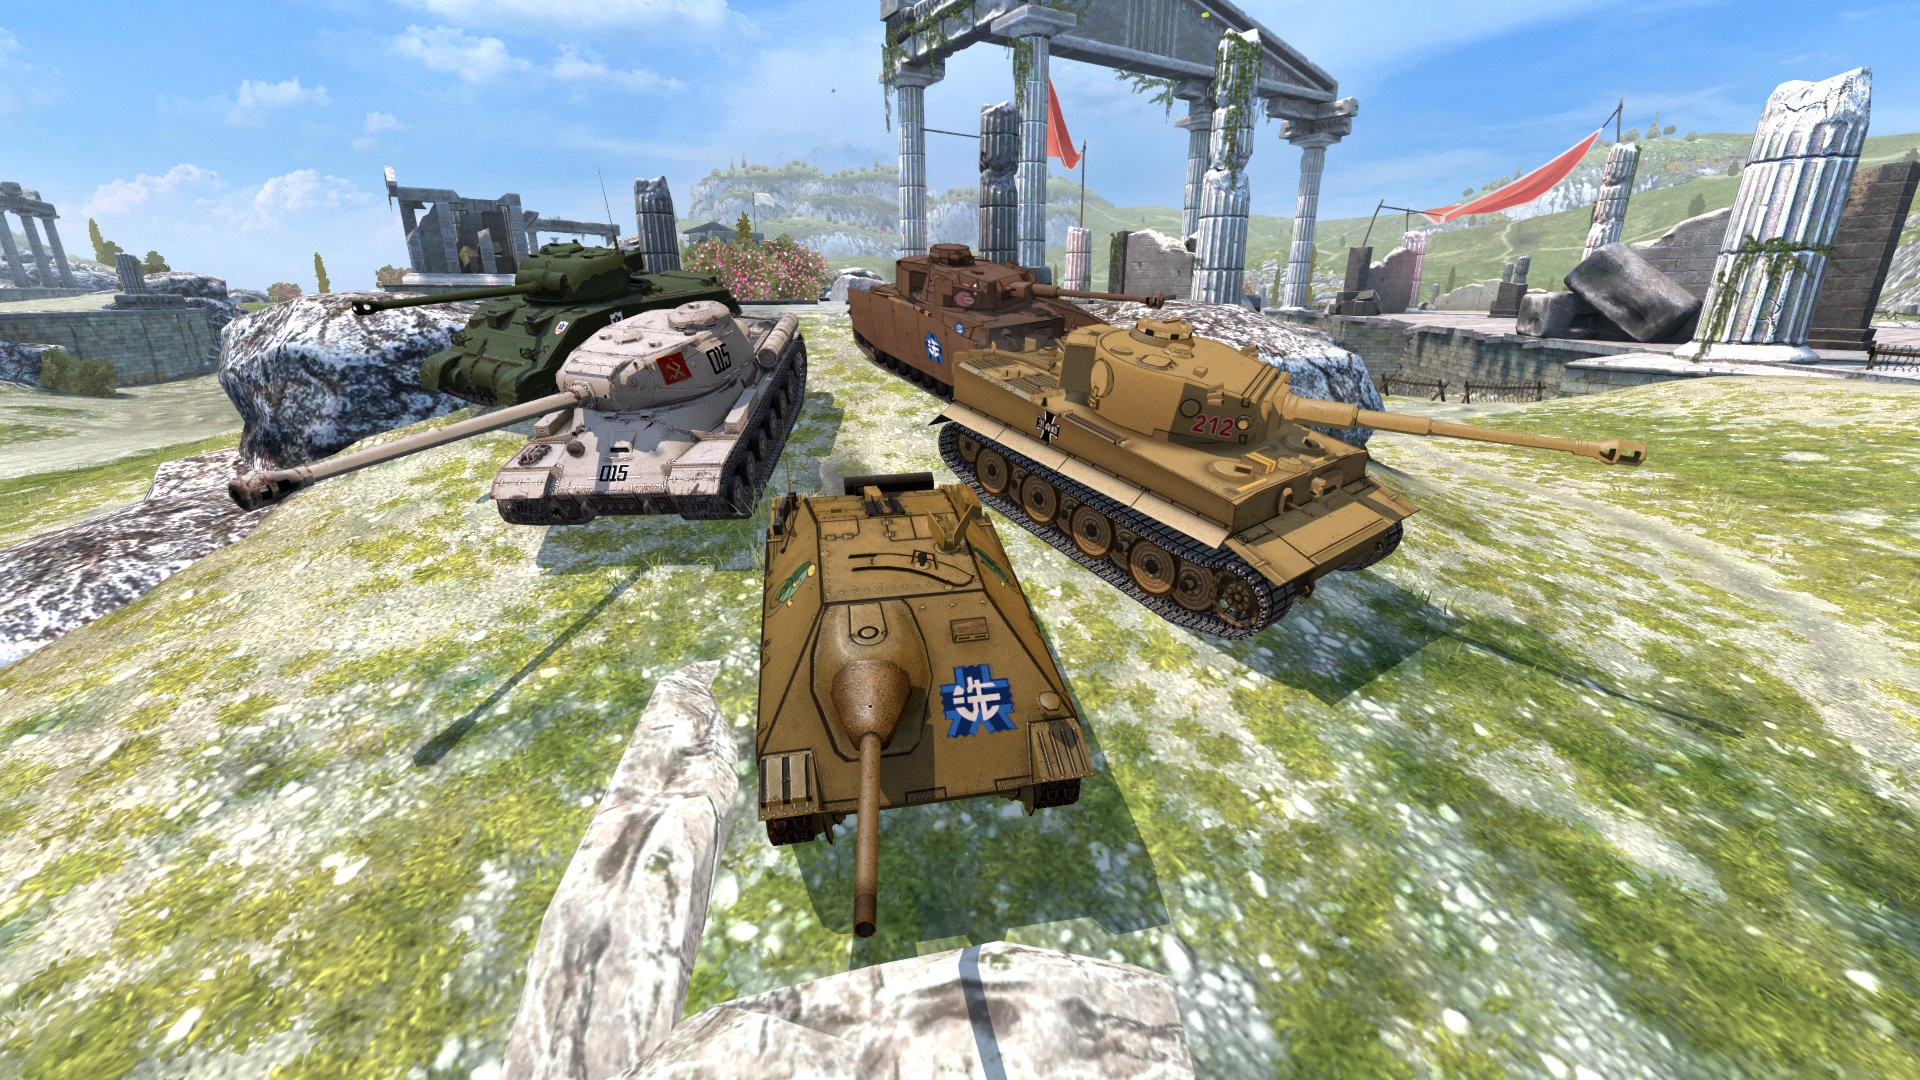 Two New Vehicles From The Girls und Panzer Universe Head for World of Tanks Blitz